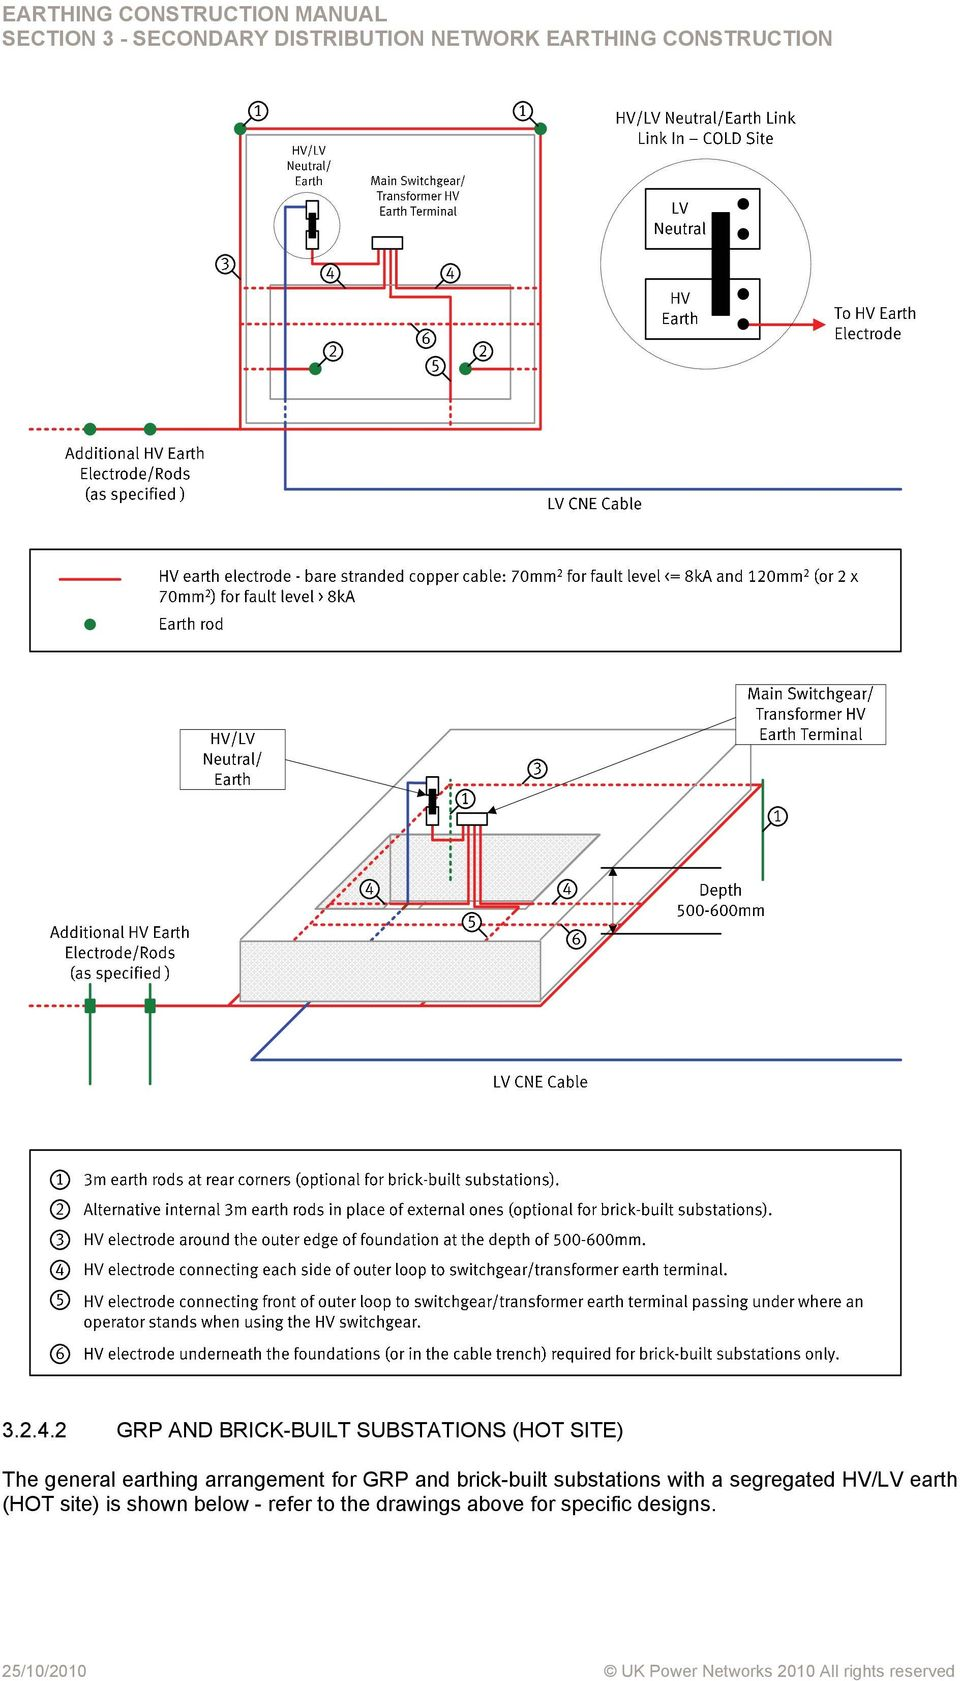 earthing arrangement for GRP and brick-built substations